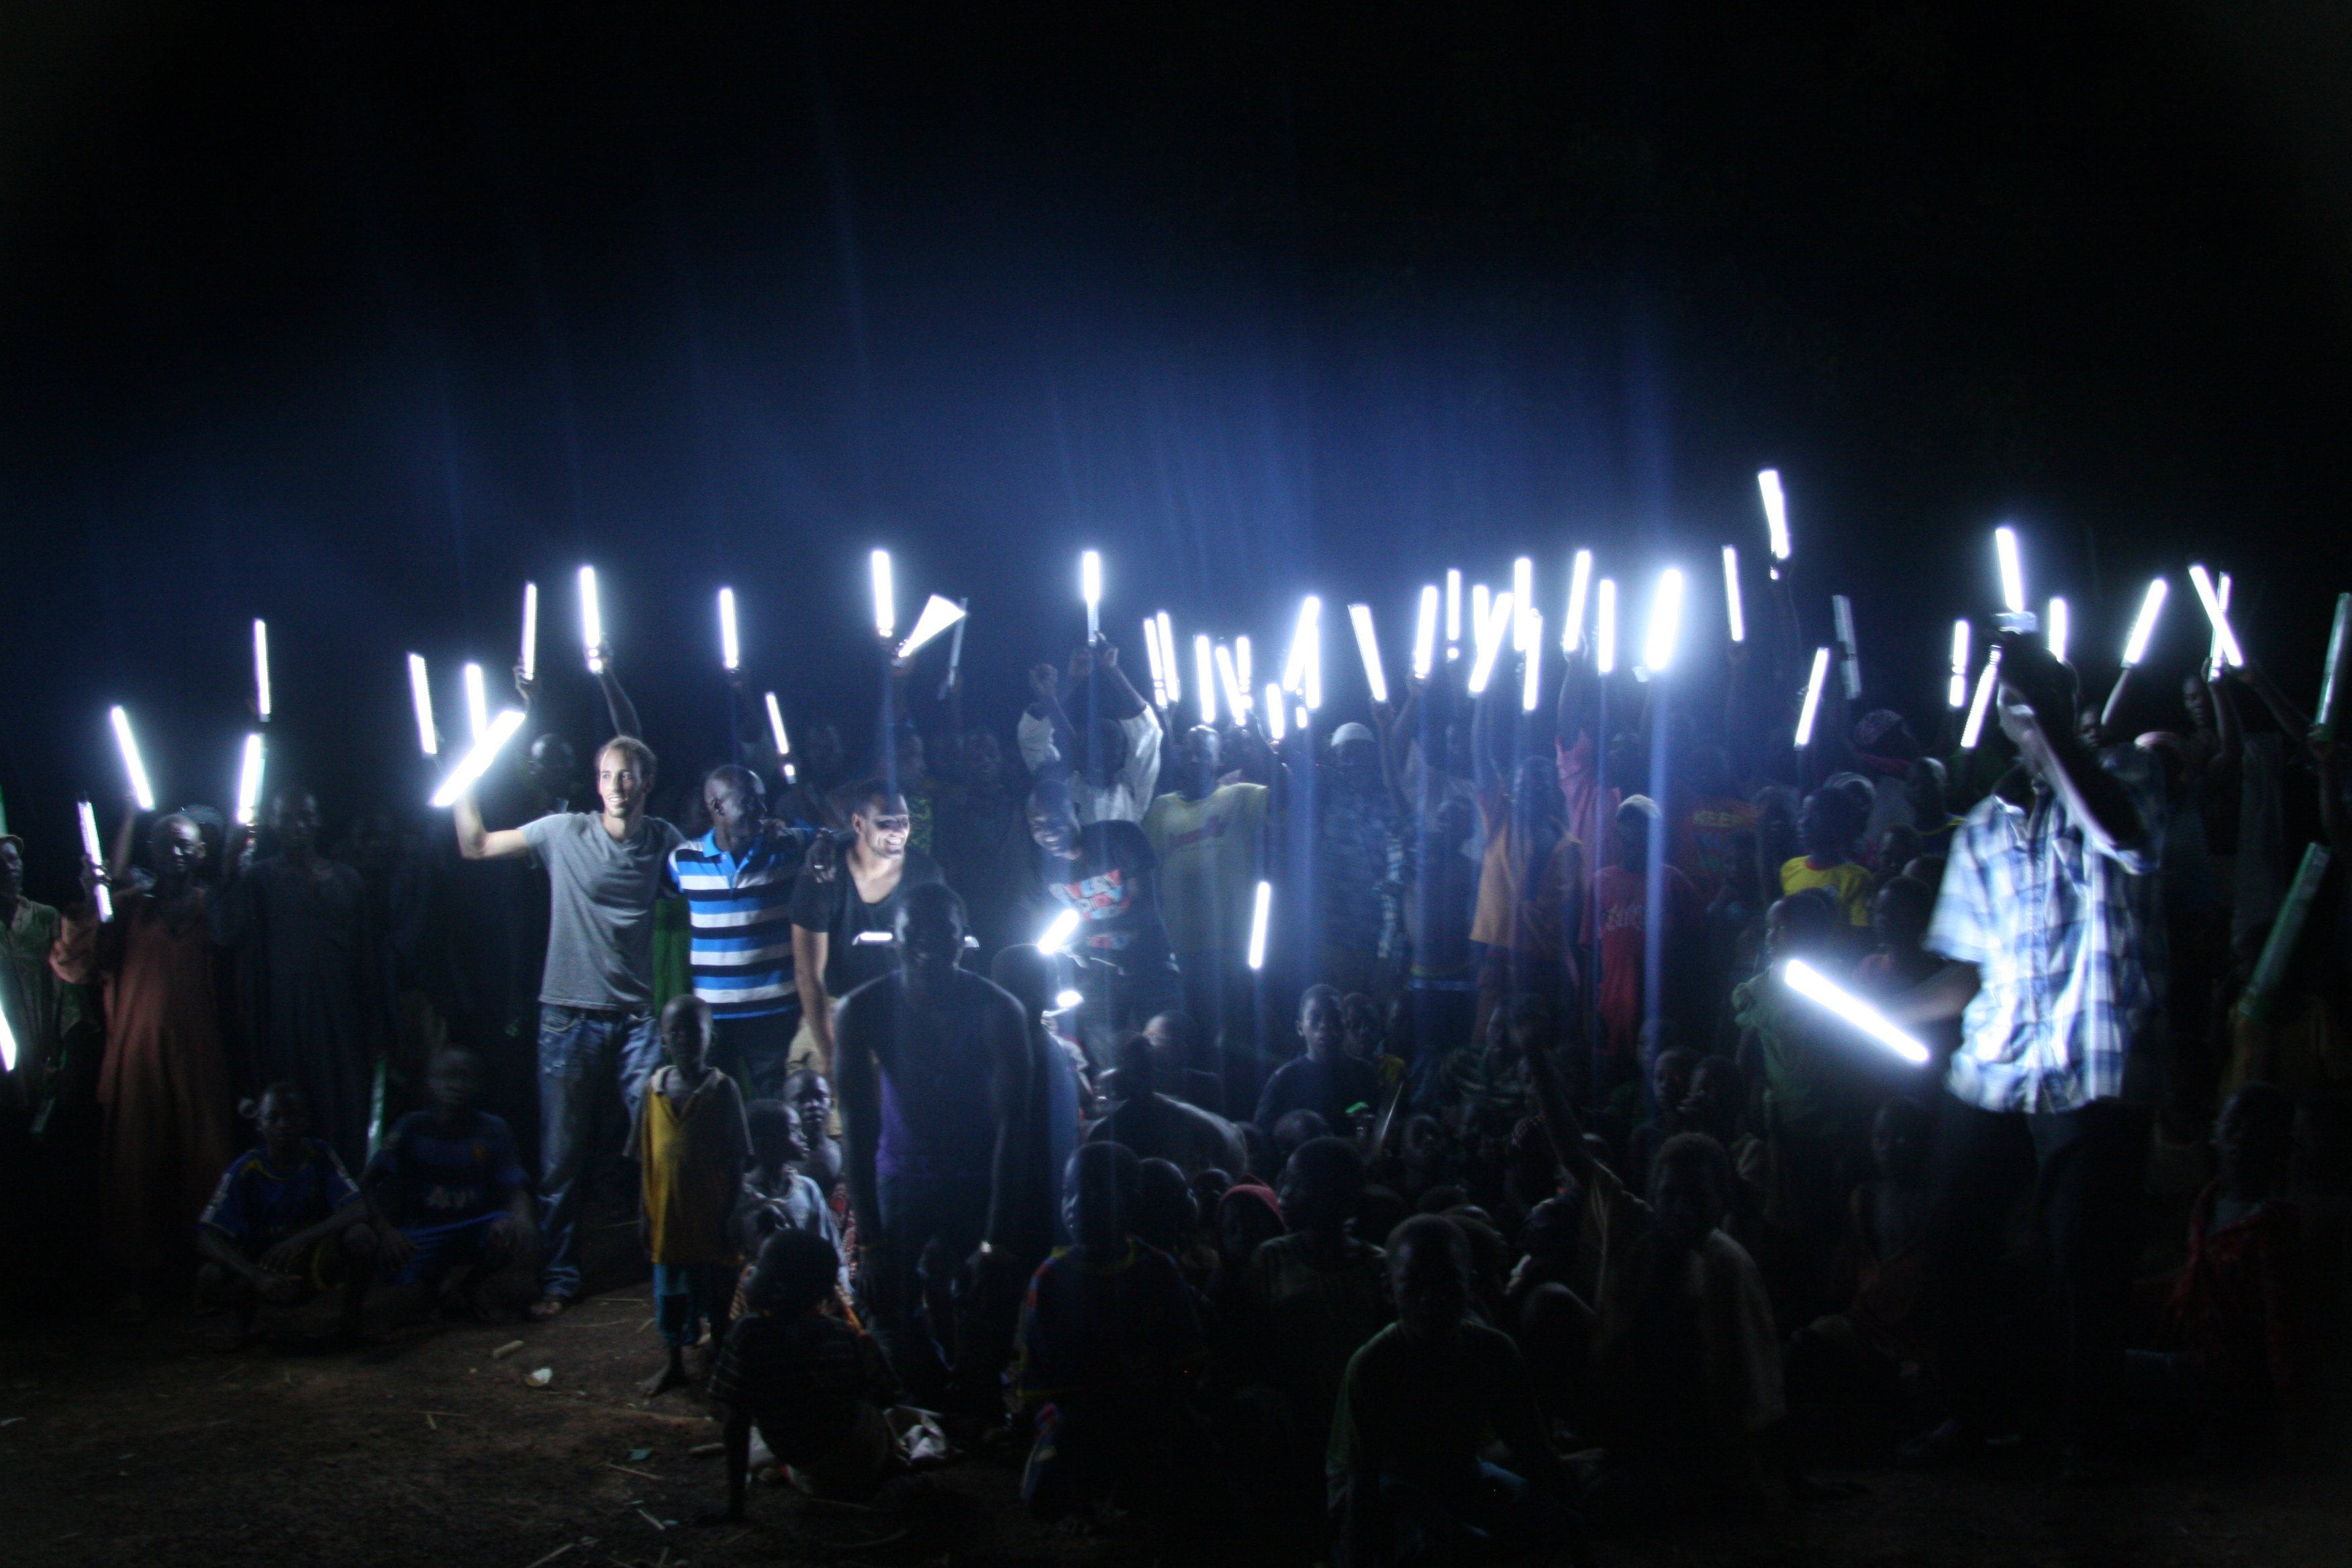 Group photo of the village with their new rechargeable lanterns!